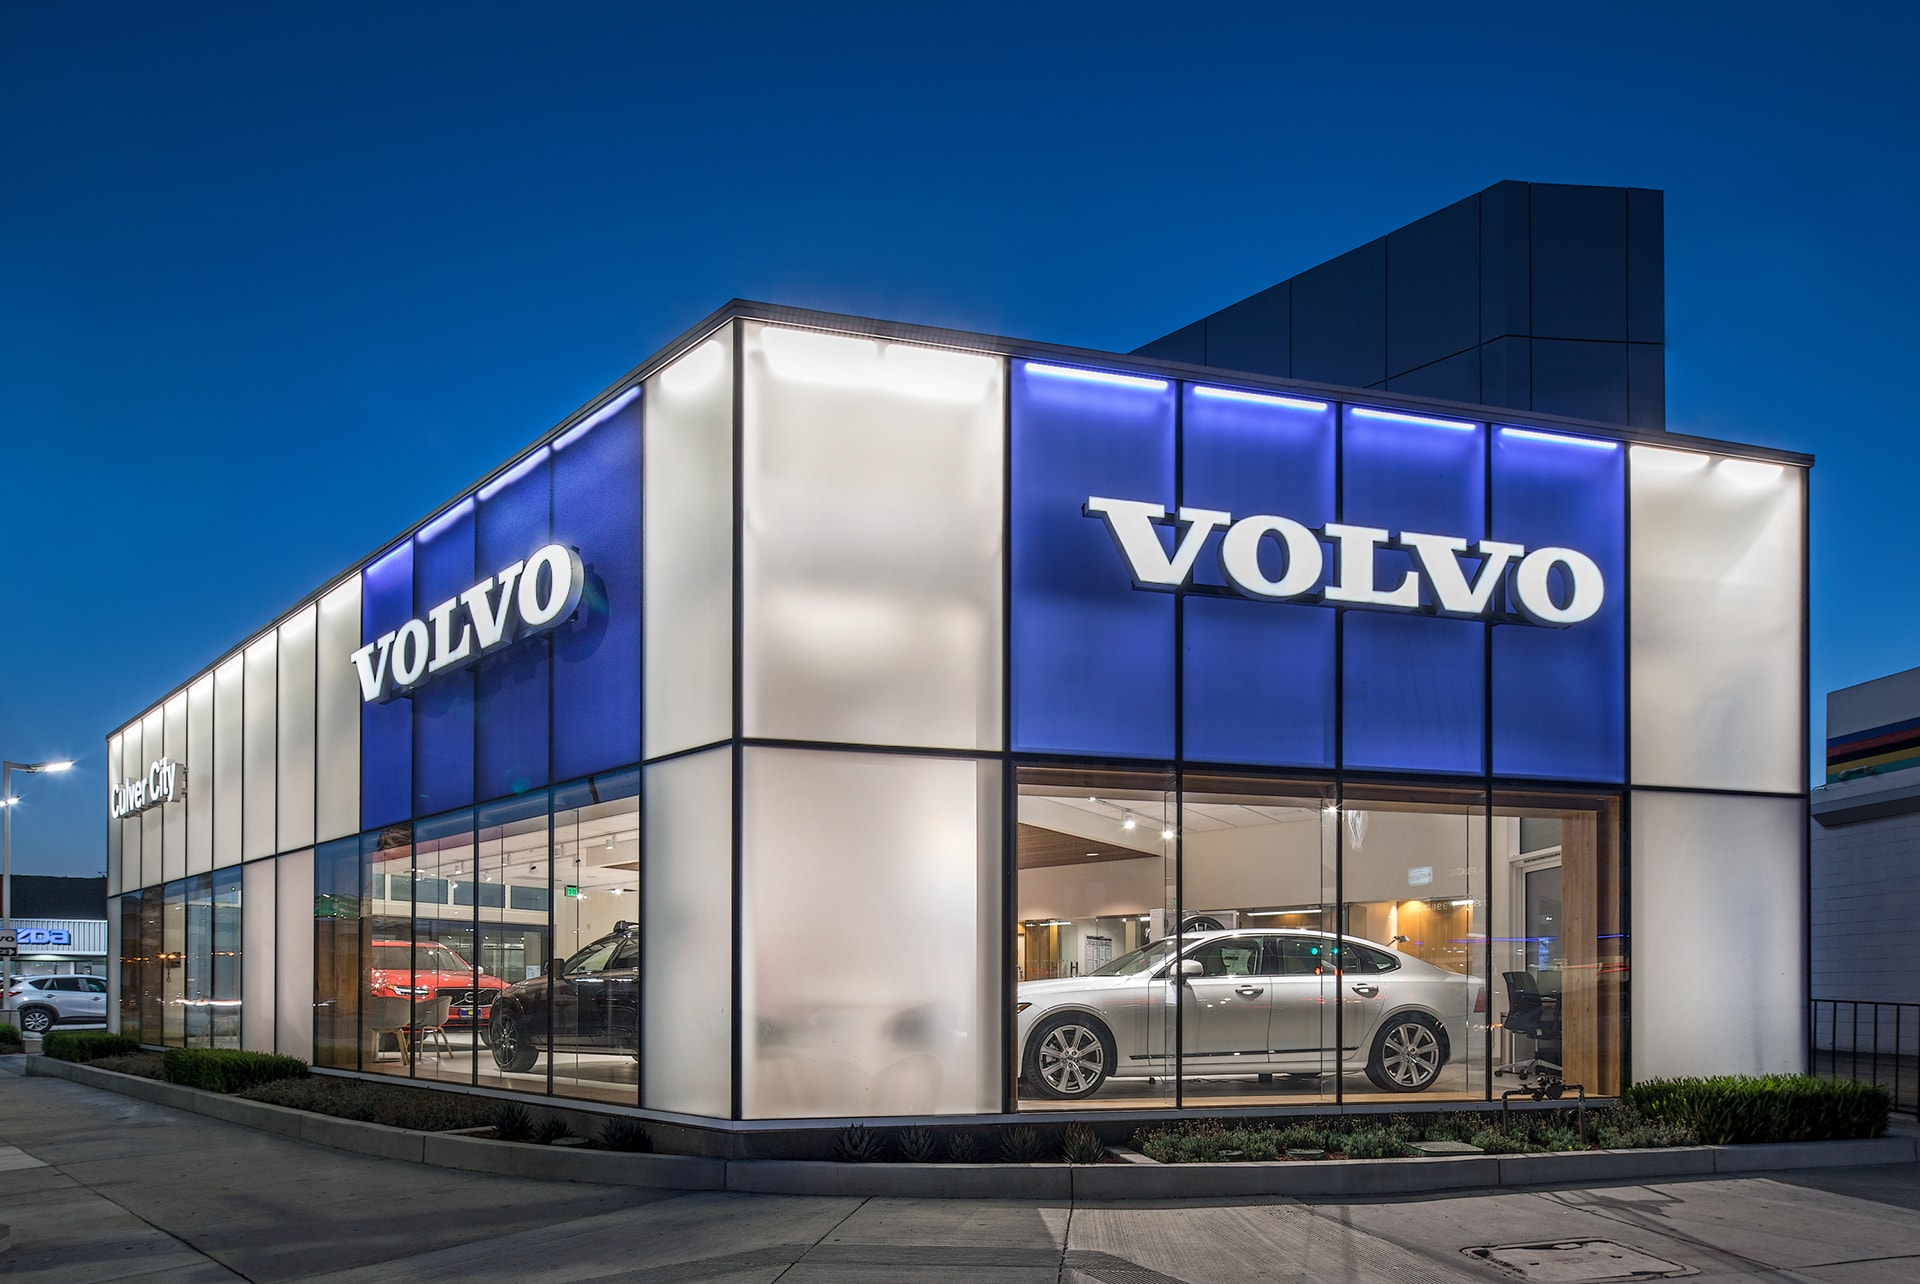 Visit us at our Remodeled, State-of-the-Art Volvo Cars Dealership in Culver City